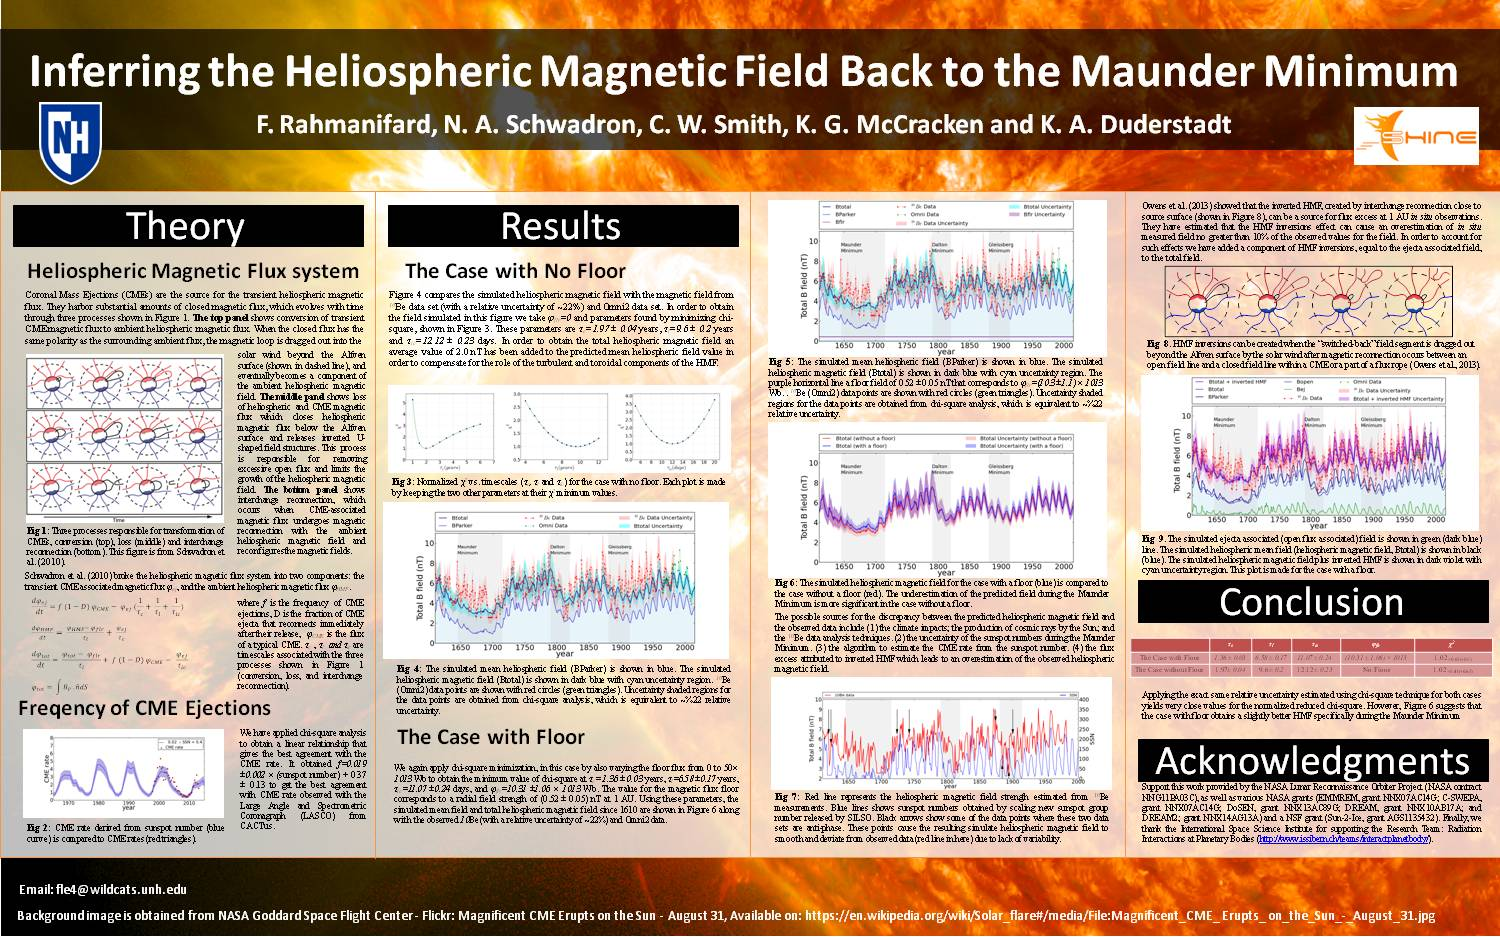 Inferring The Heliospheric Magnetic Field Back To The Maunder Minimum by frahmanif